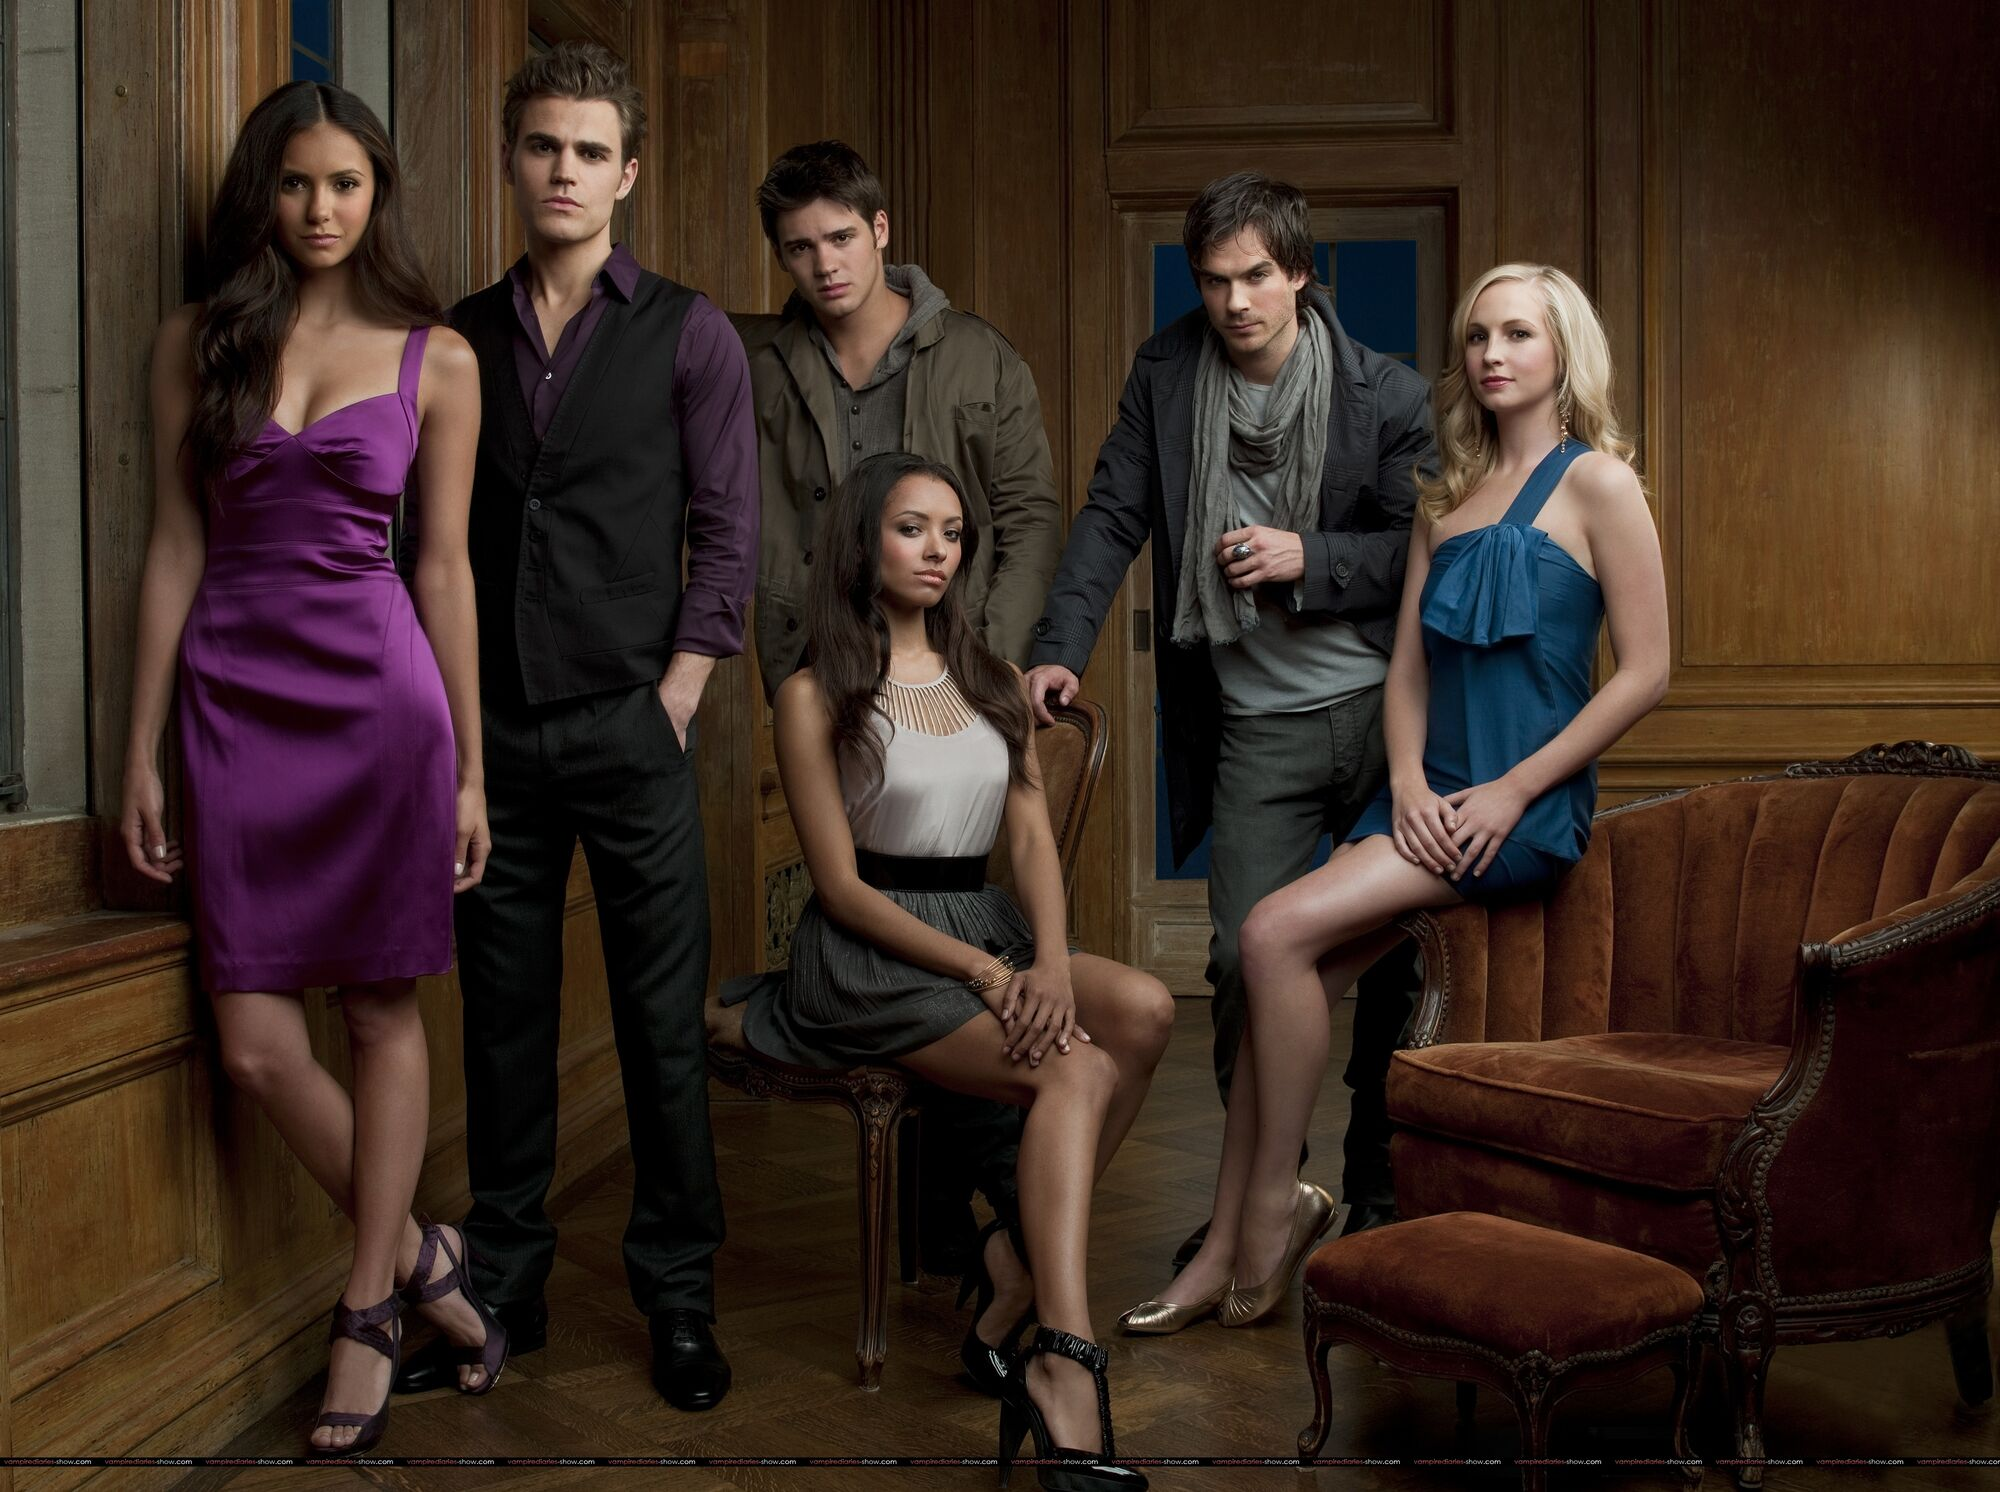 vampire diaries the awakening book report english literature essay More related with pdf online vampire diaries book awakening : soldiers heart reading literature through the complete essays the canary report the top 5 silent.